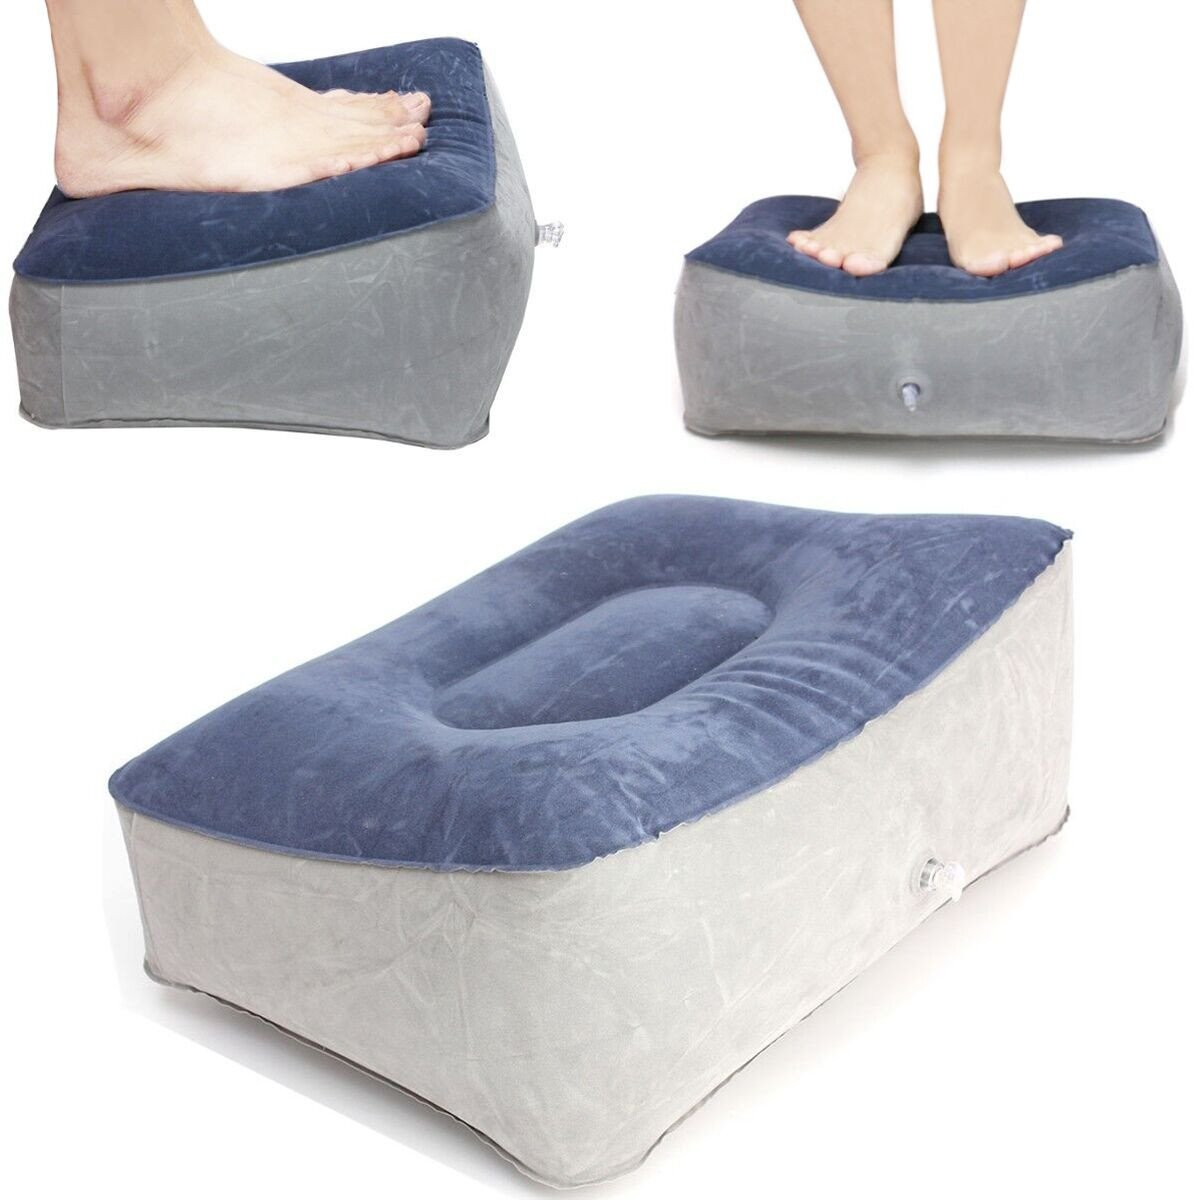 QOJA inflatable footrest pillow travel home help reduce dvt risk